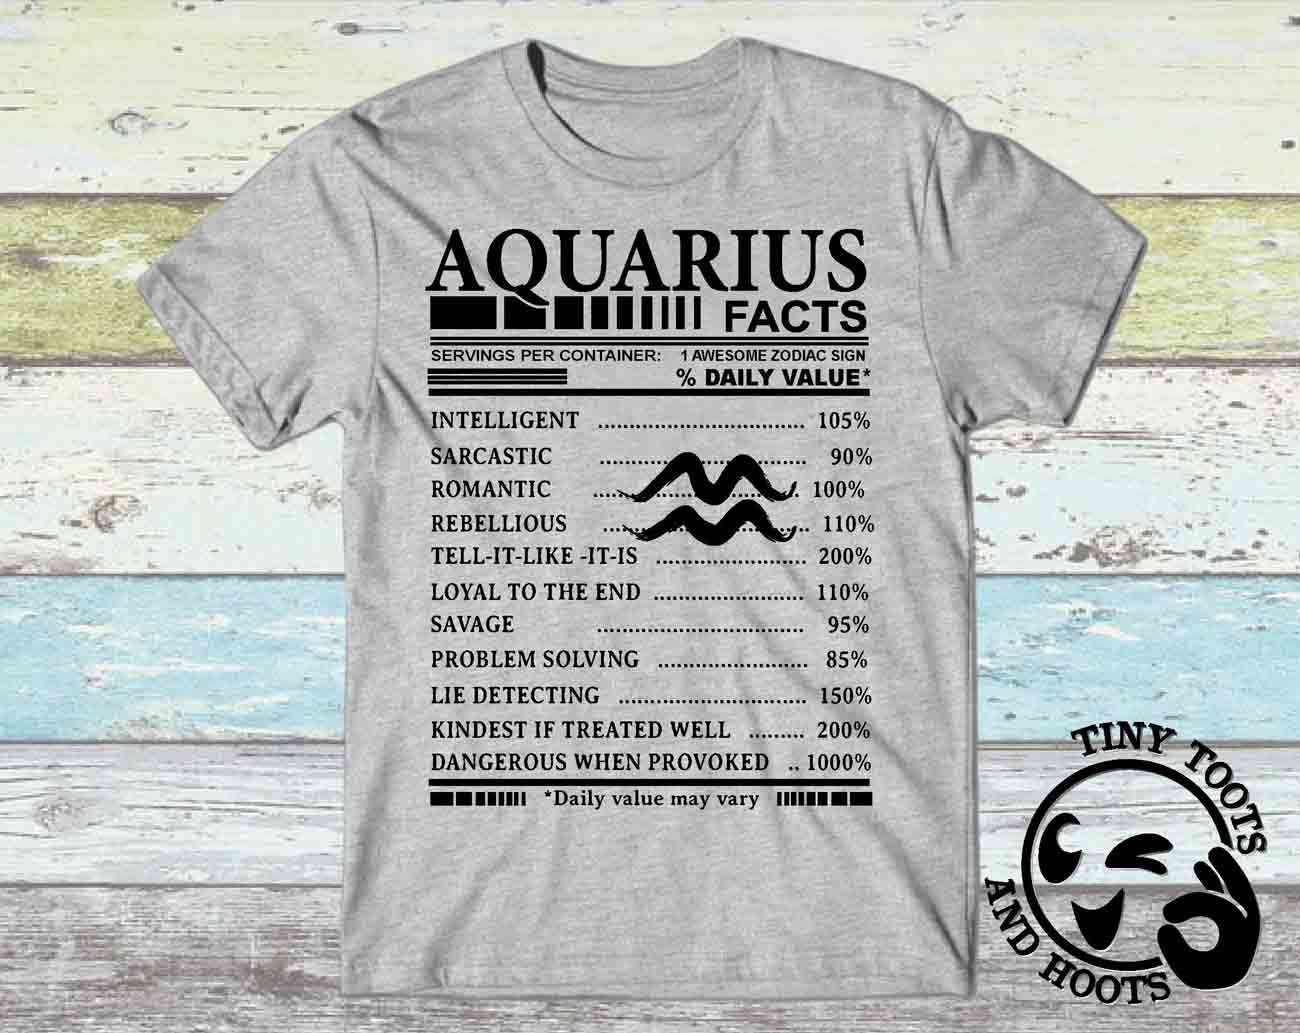 gifts-for-aquarius-aquarius-facts-t-shirt